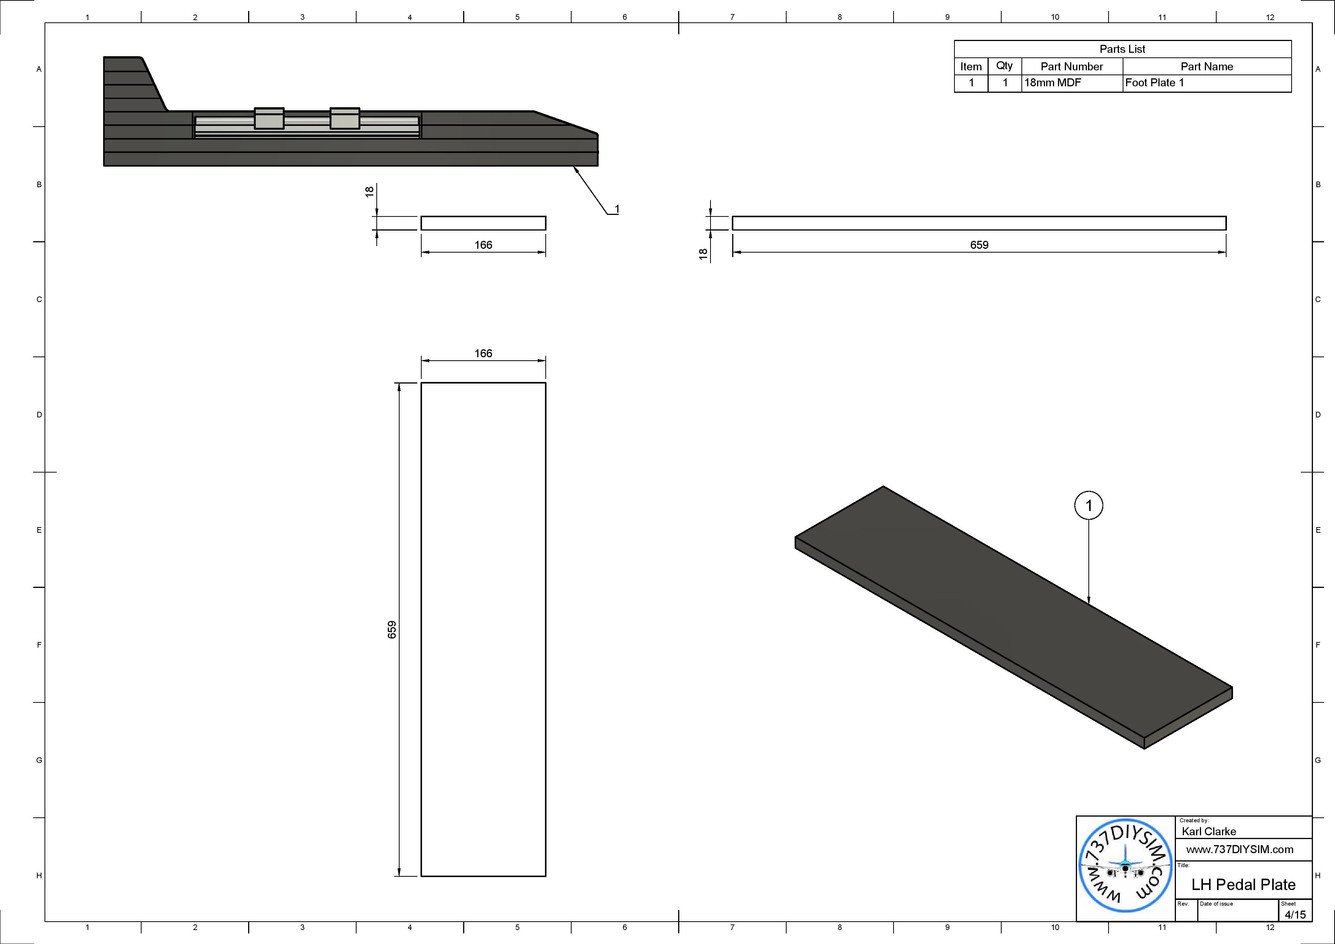 LH Pedal Plate Drawing v1-page-004.jpg